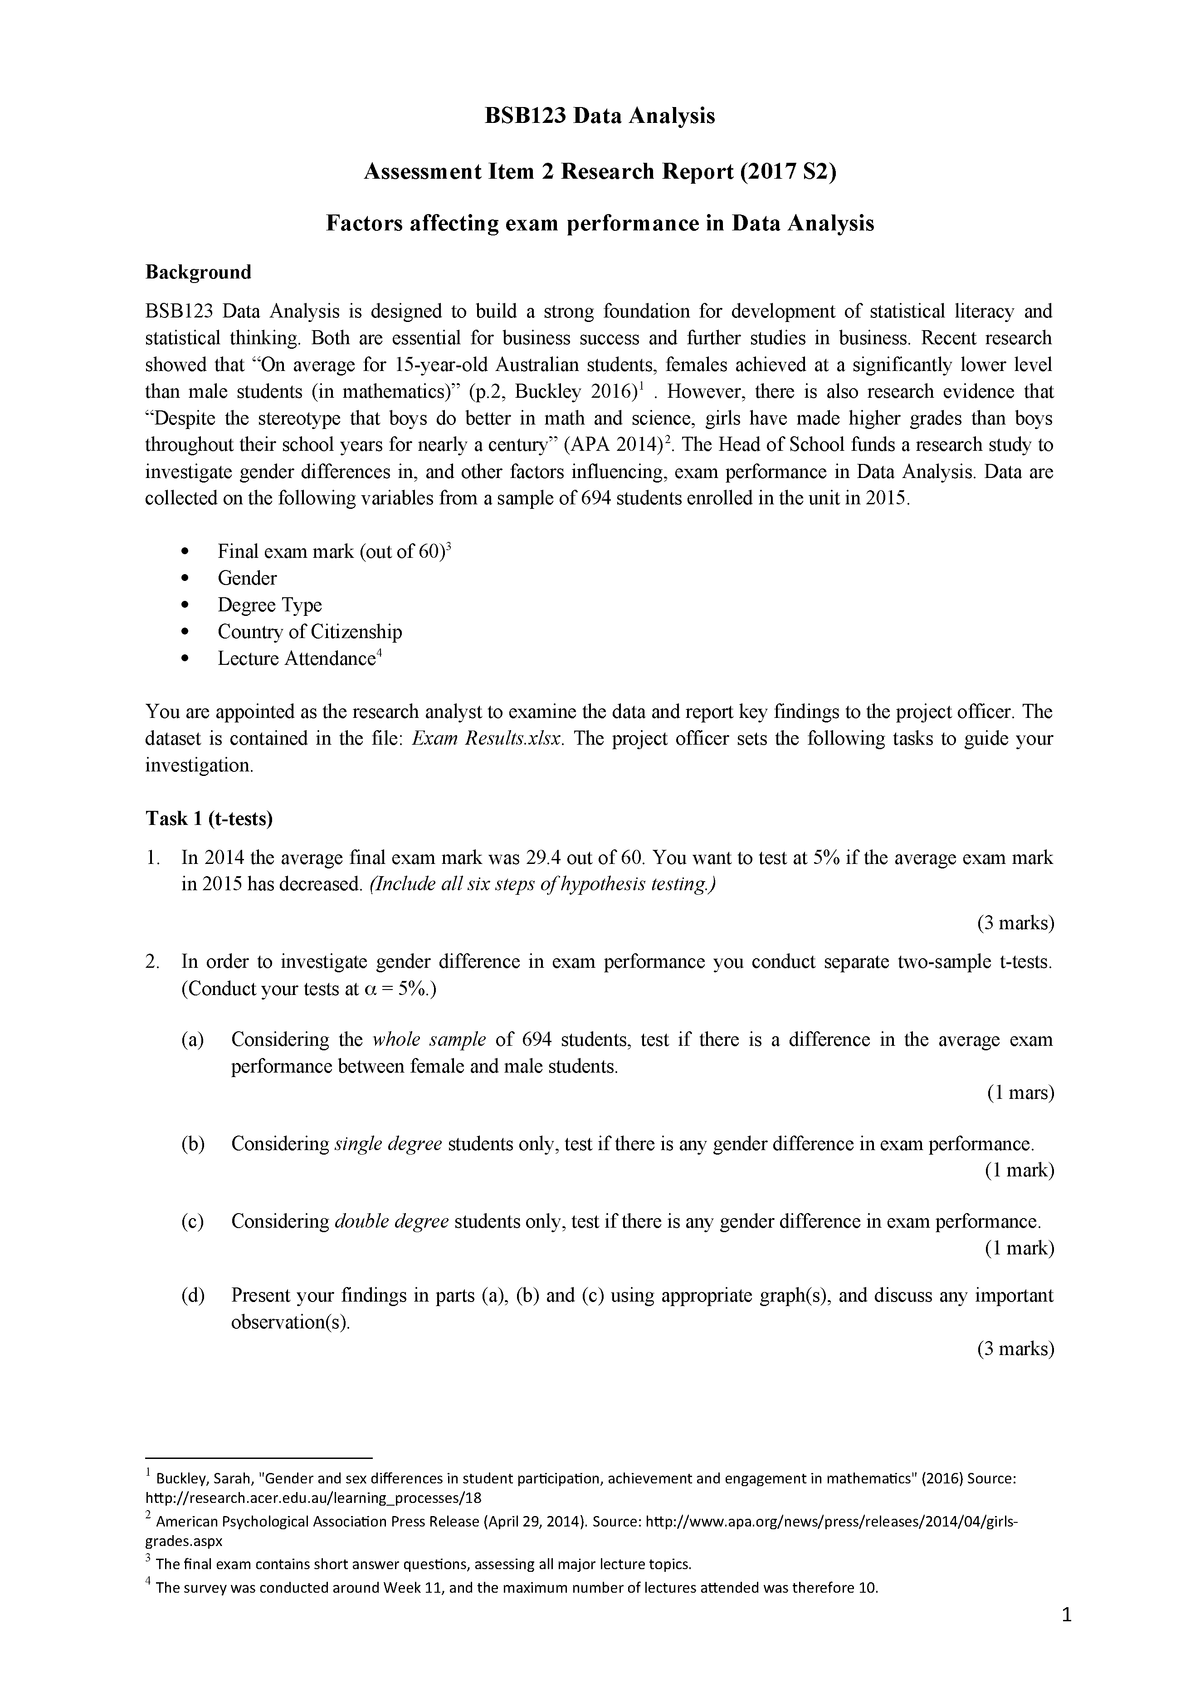 BSB123 Research Report Task Sheet (2017 S2) revised - BSB123: Data